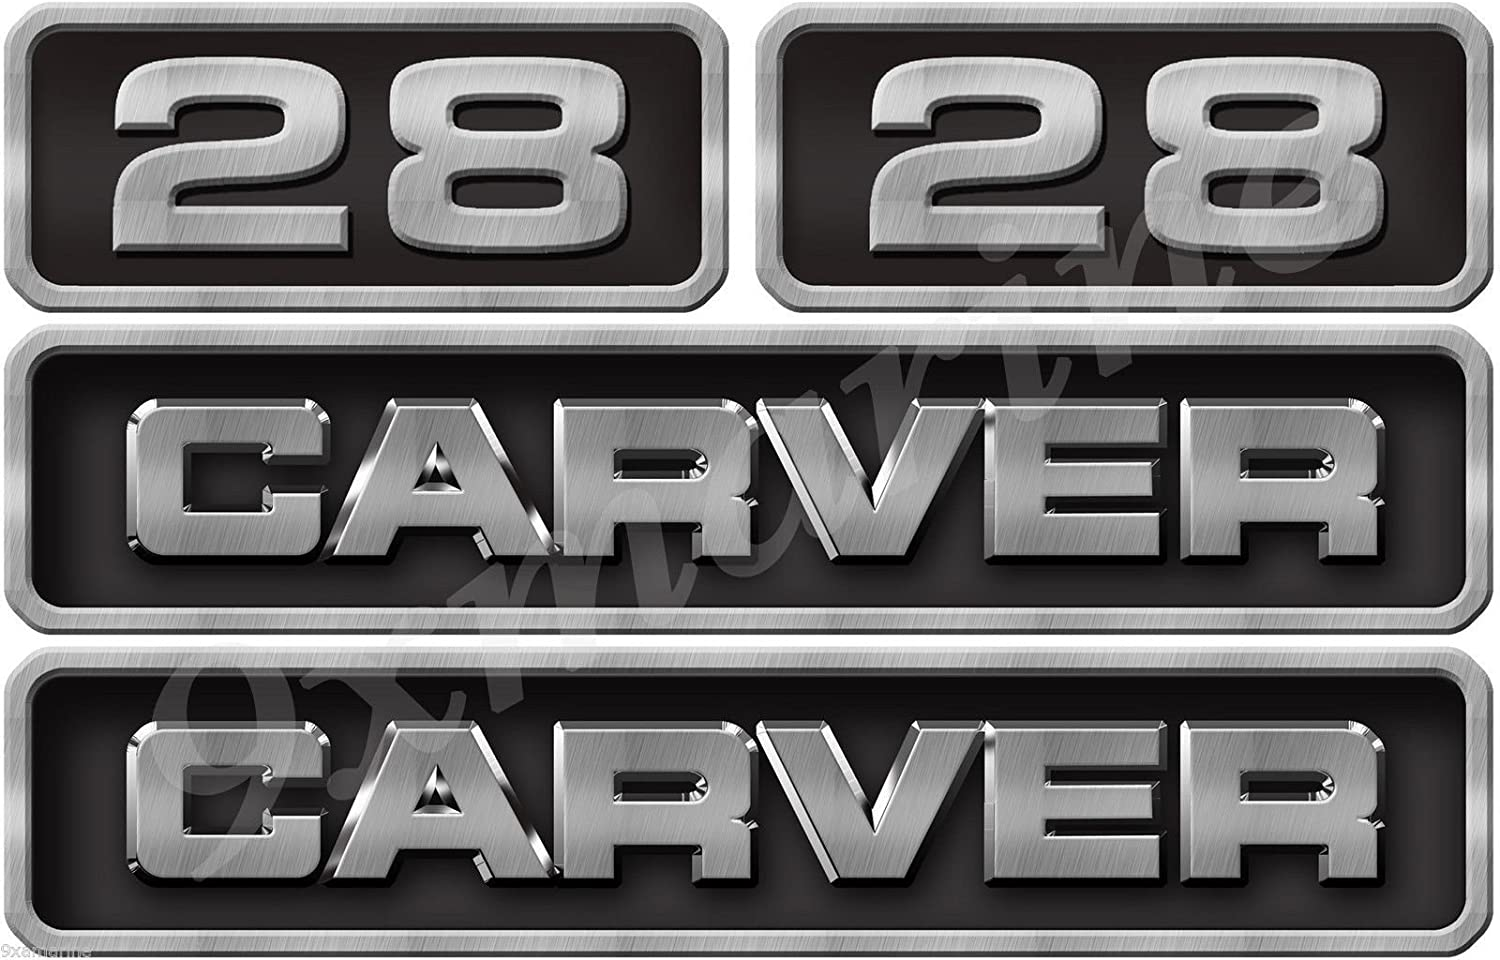 USED GOOD METAL CARVER EMBLEM  with Adhesive backing